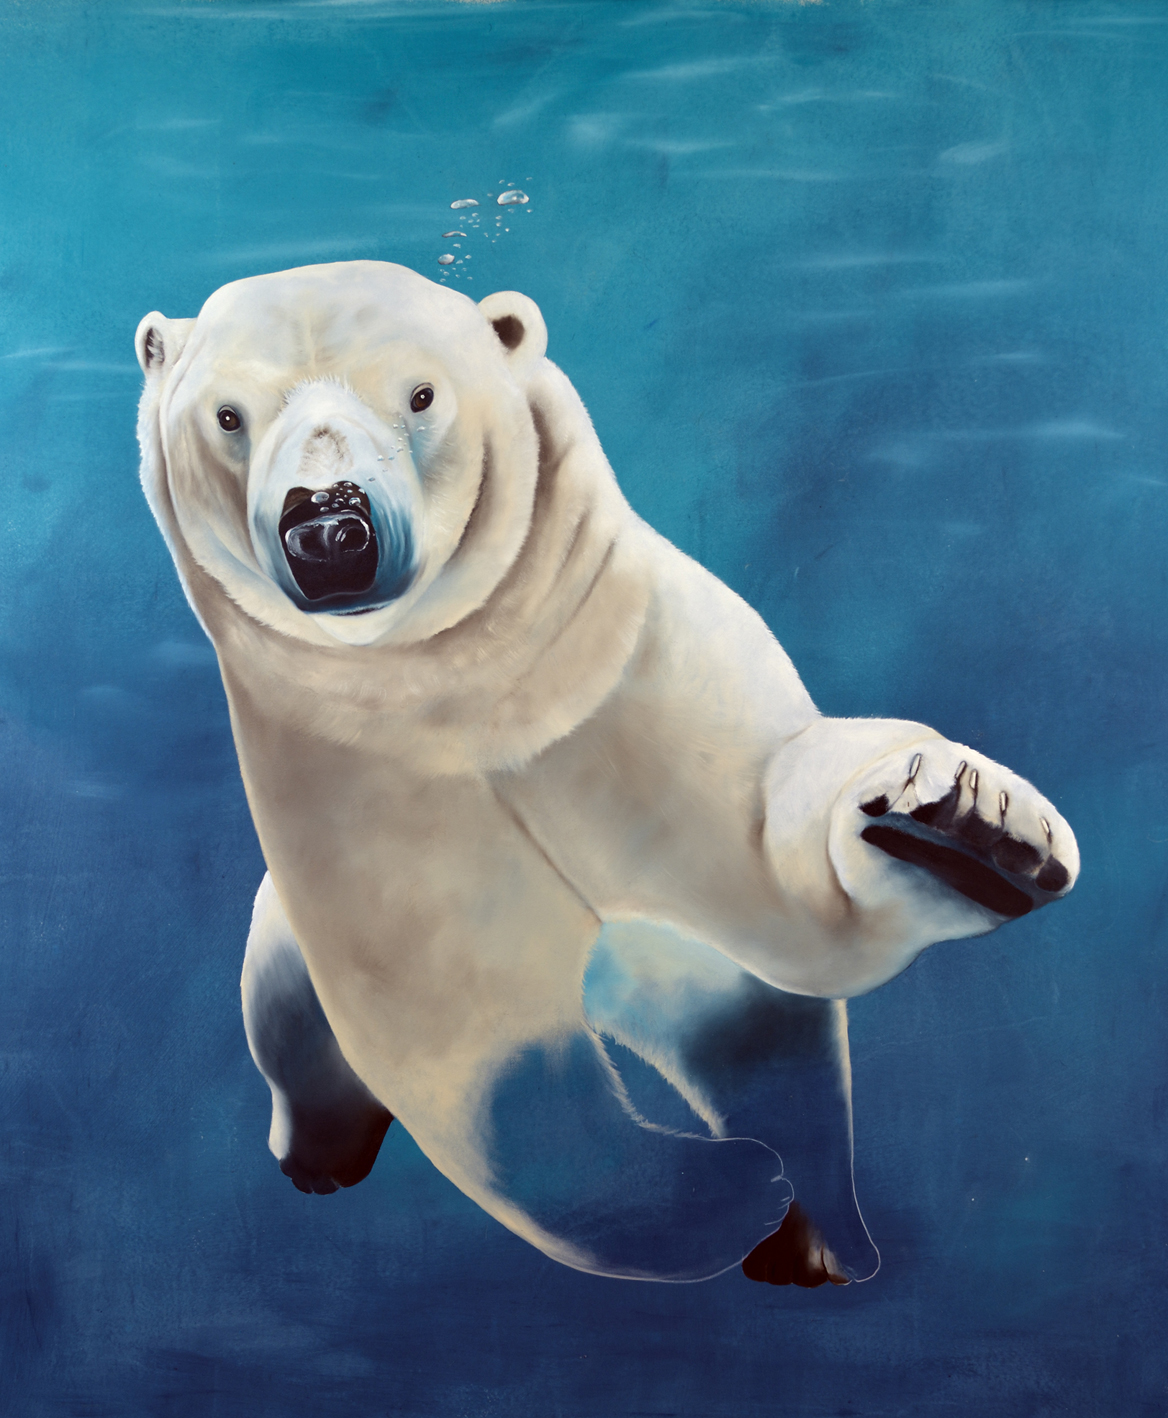 URSUS-MARITIMUS--1 divers Thierry Bisch Contemporary painter animals painting art decoration nature biodiversity conservation